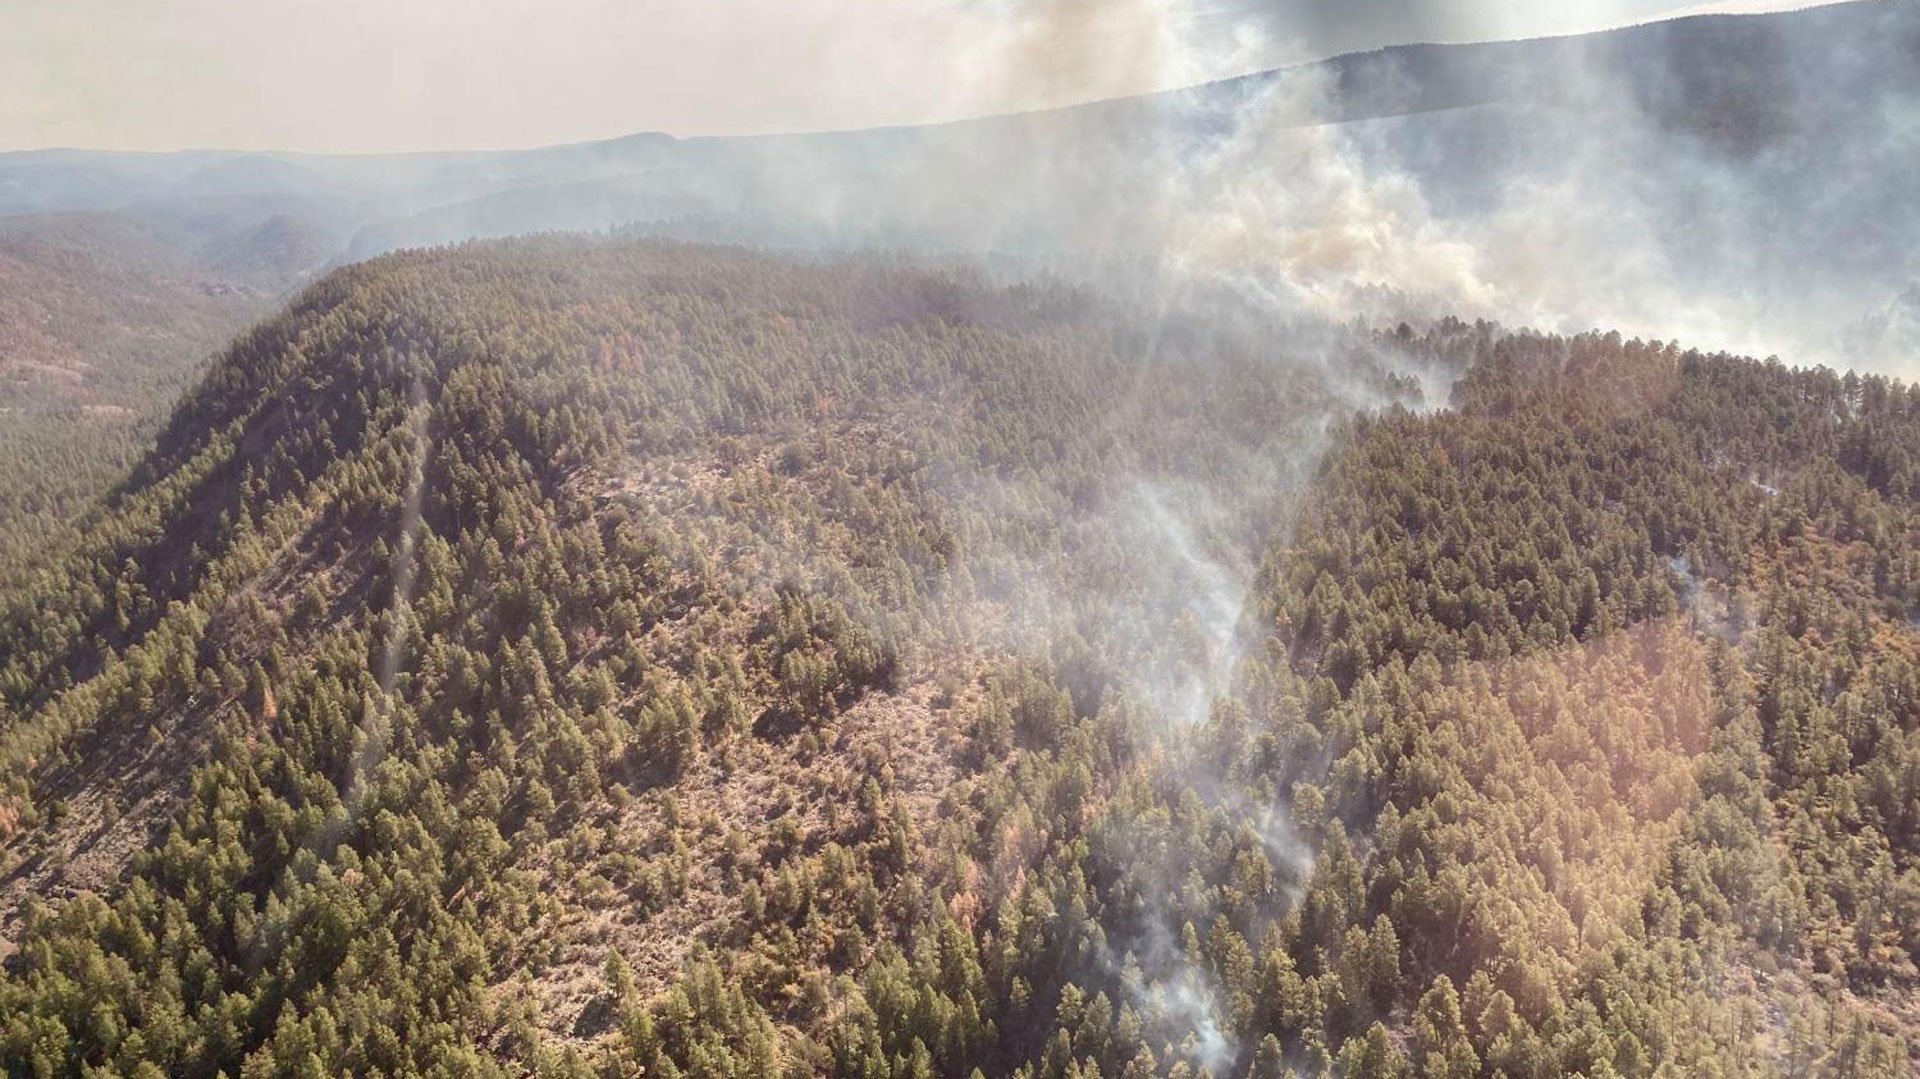 The Bonito Rock Fire has been burning on the Fort Apache Reservation.